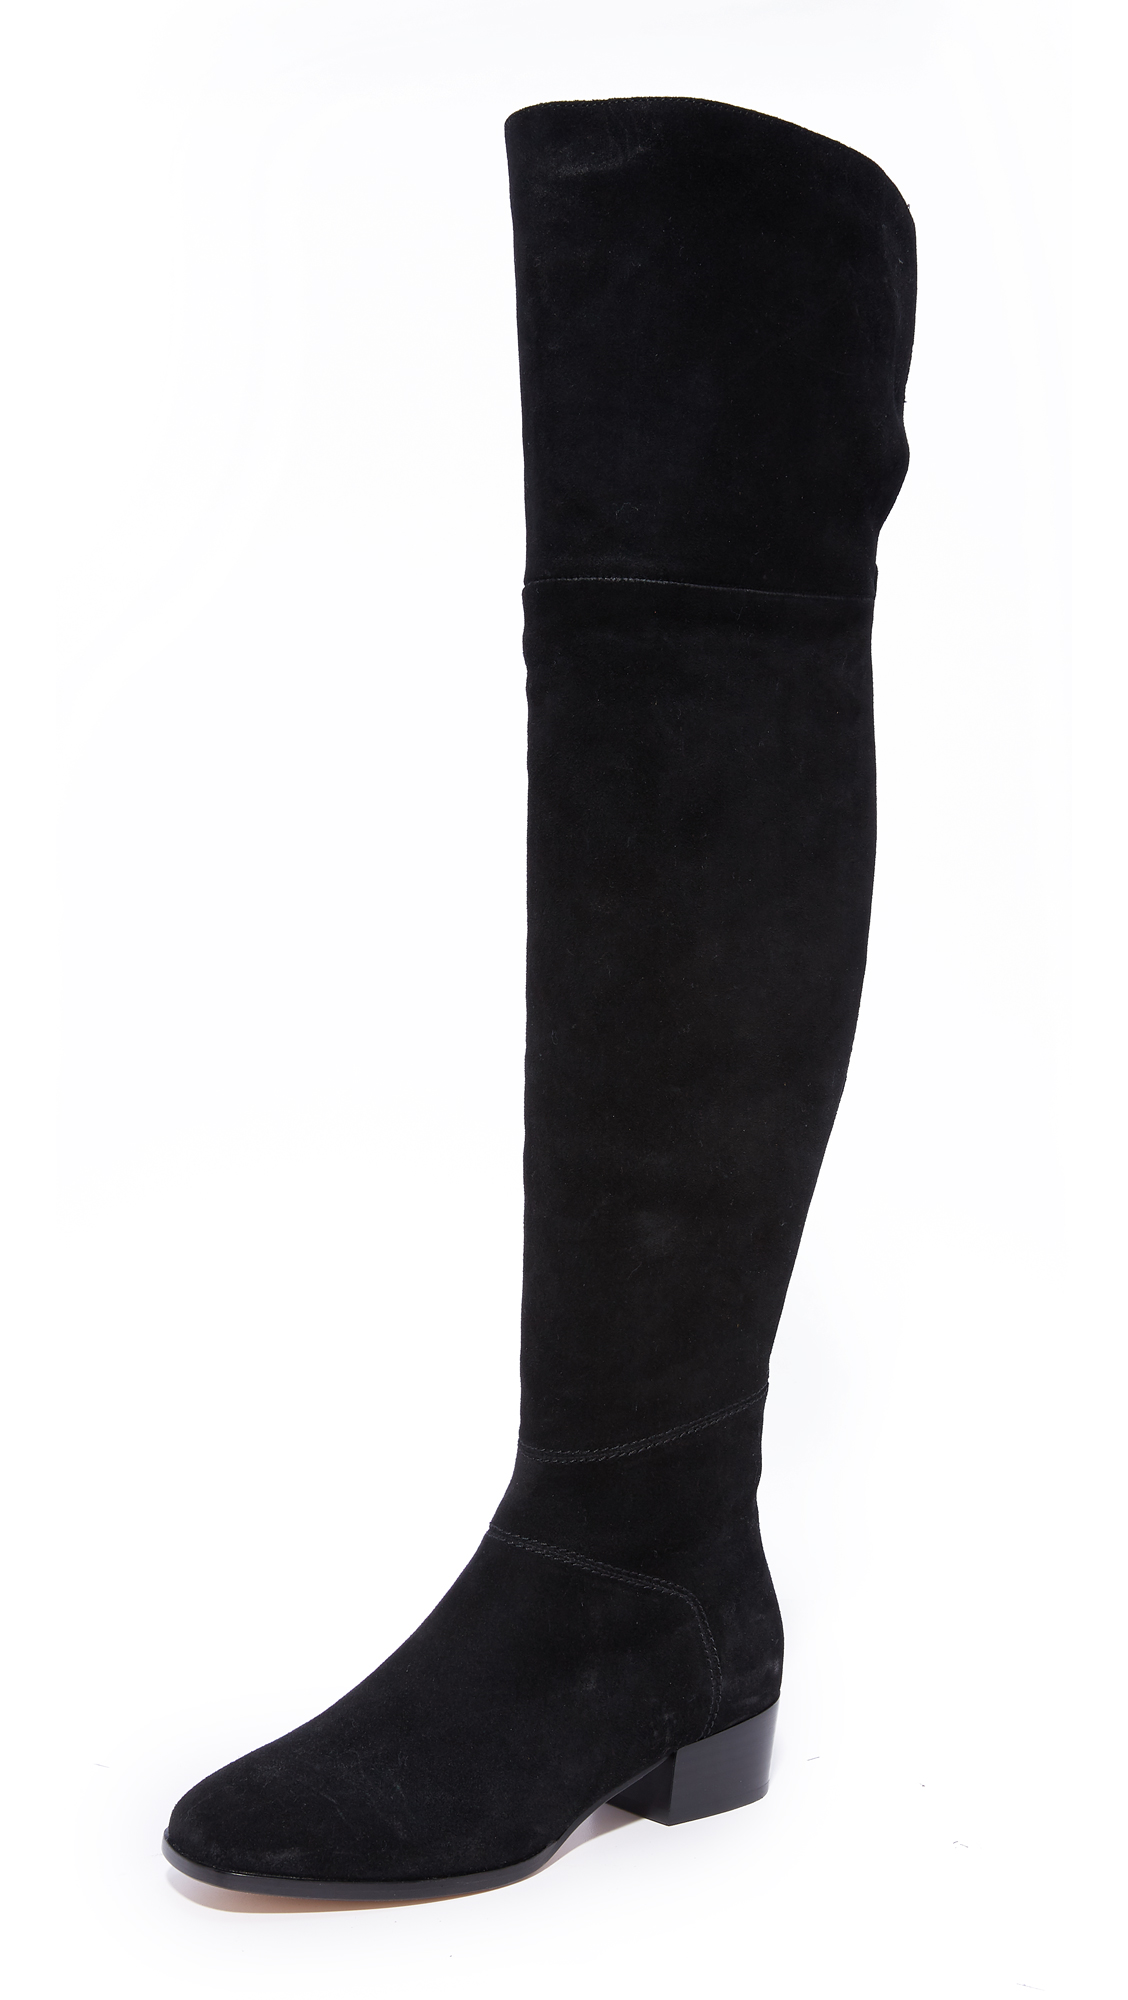 Joie Reeve Over the Knee Boots - Black